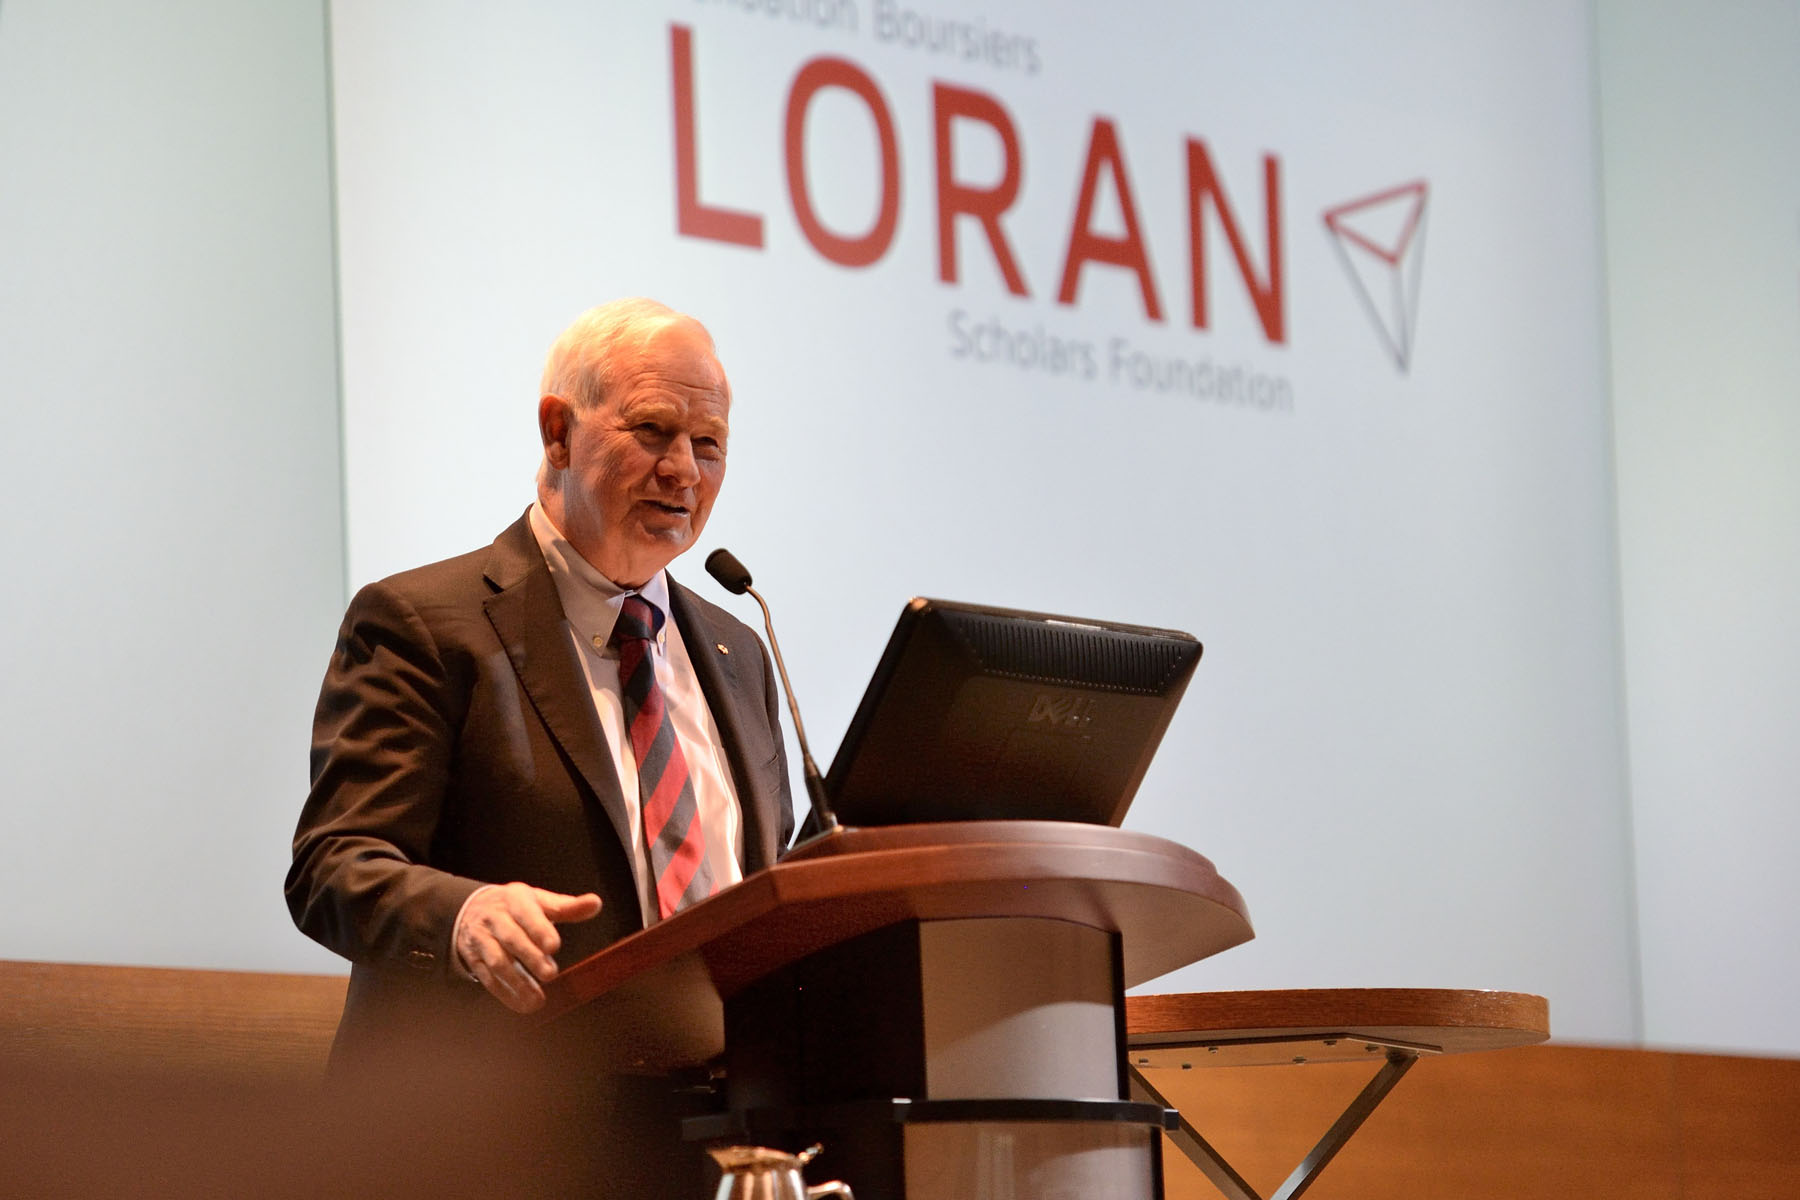 The Governor General delivered the keynote address at the Loran Scholars Foundation's 27th annual dinner.